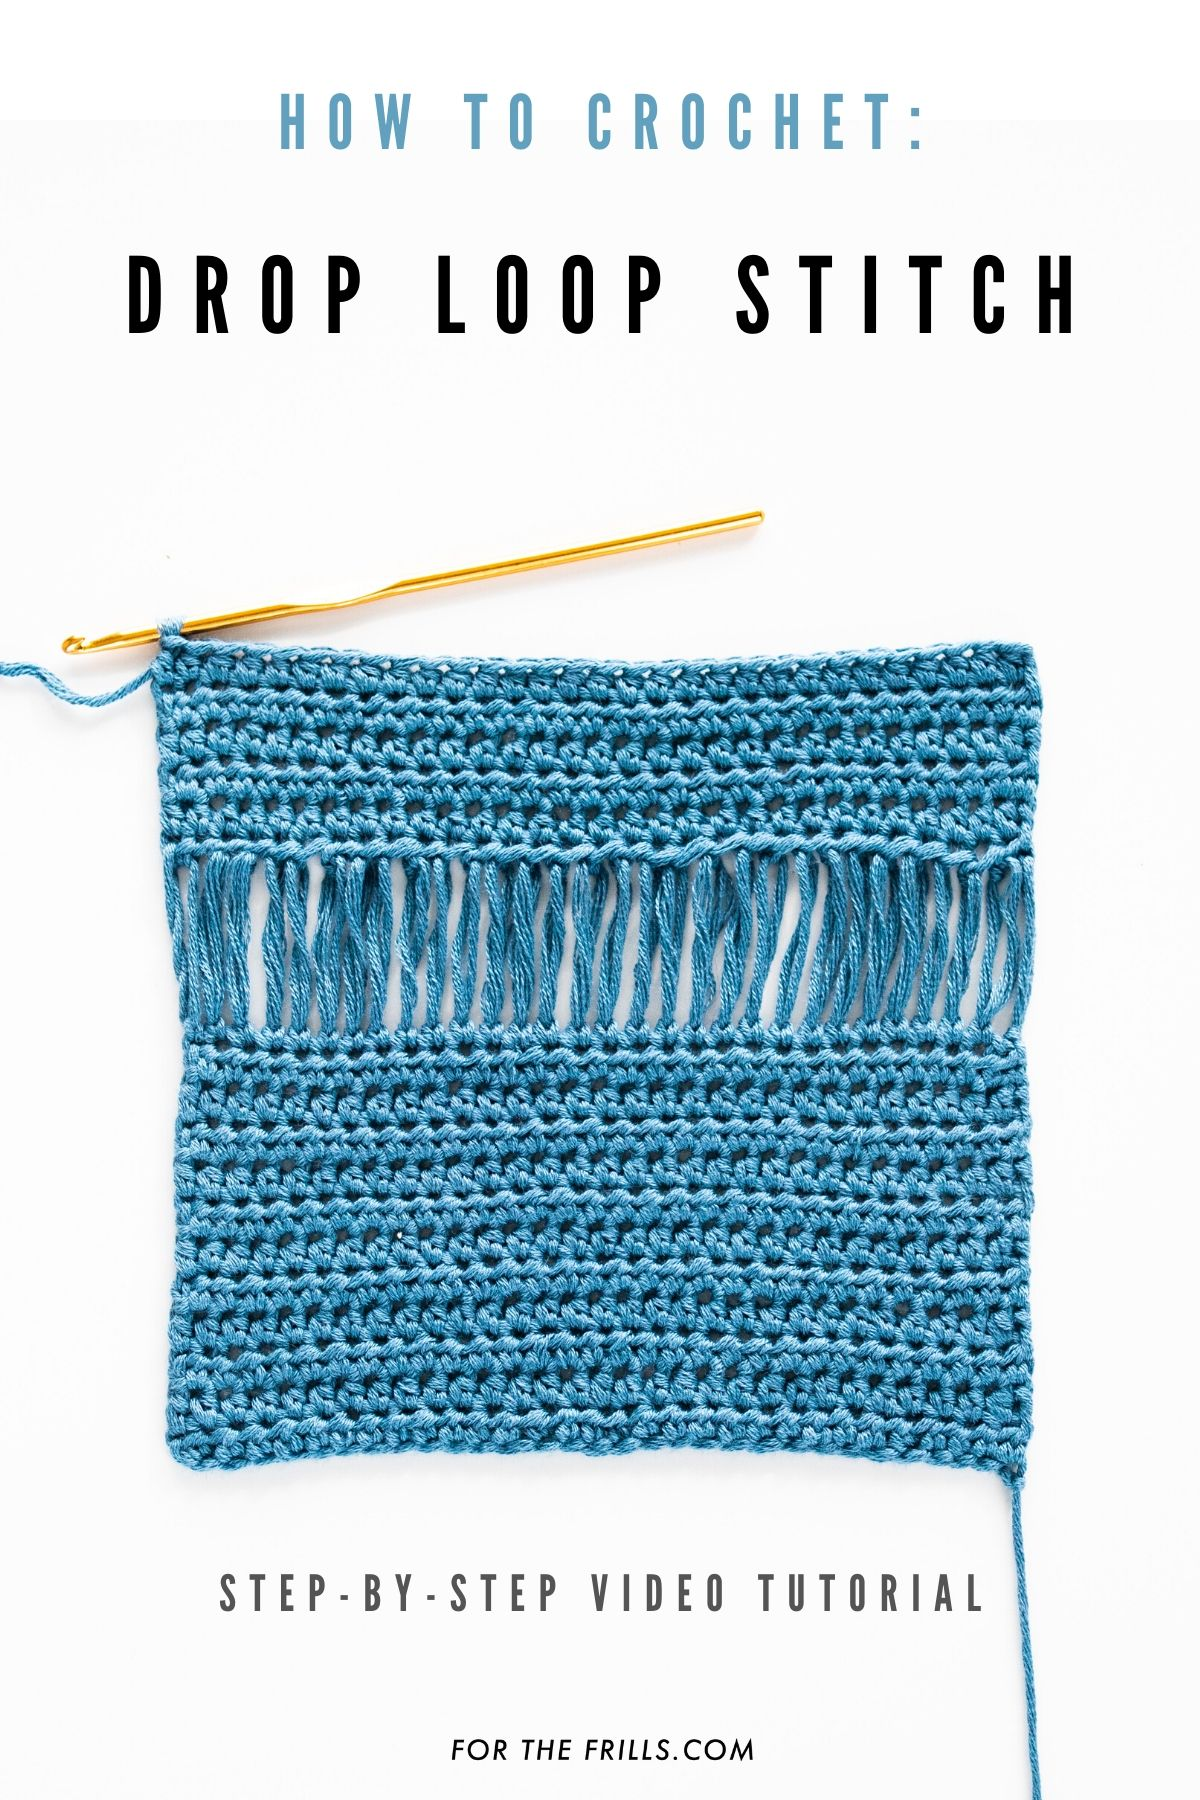 close up of drop loop crochet stitch vertical mesh with gold crochet hook pinterest image